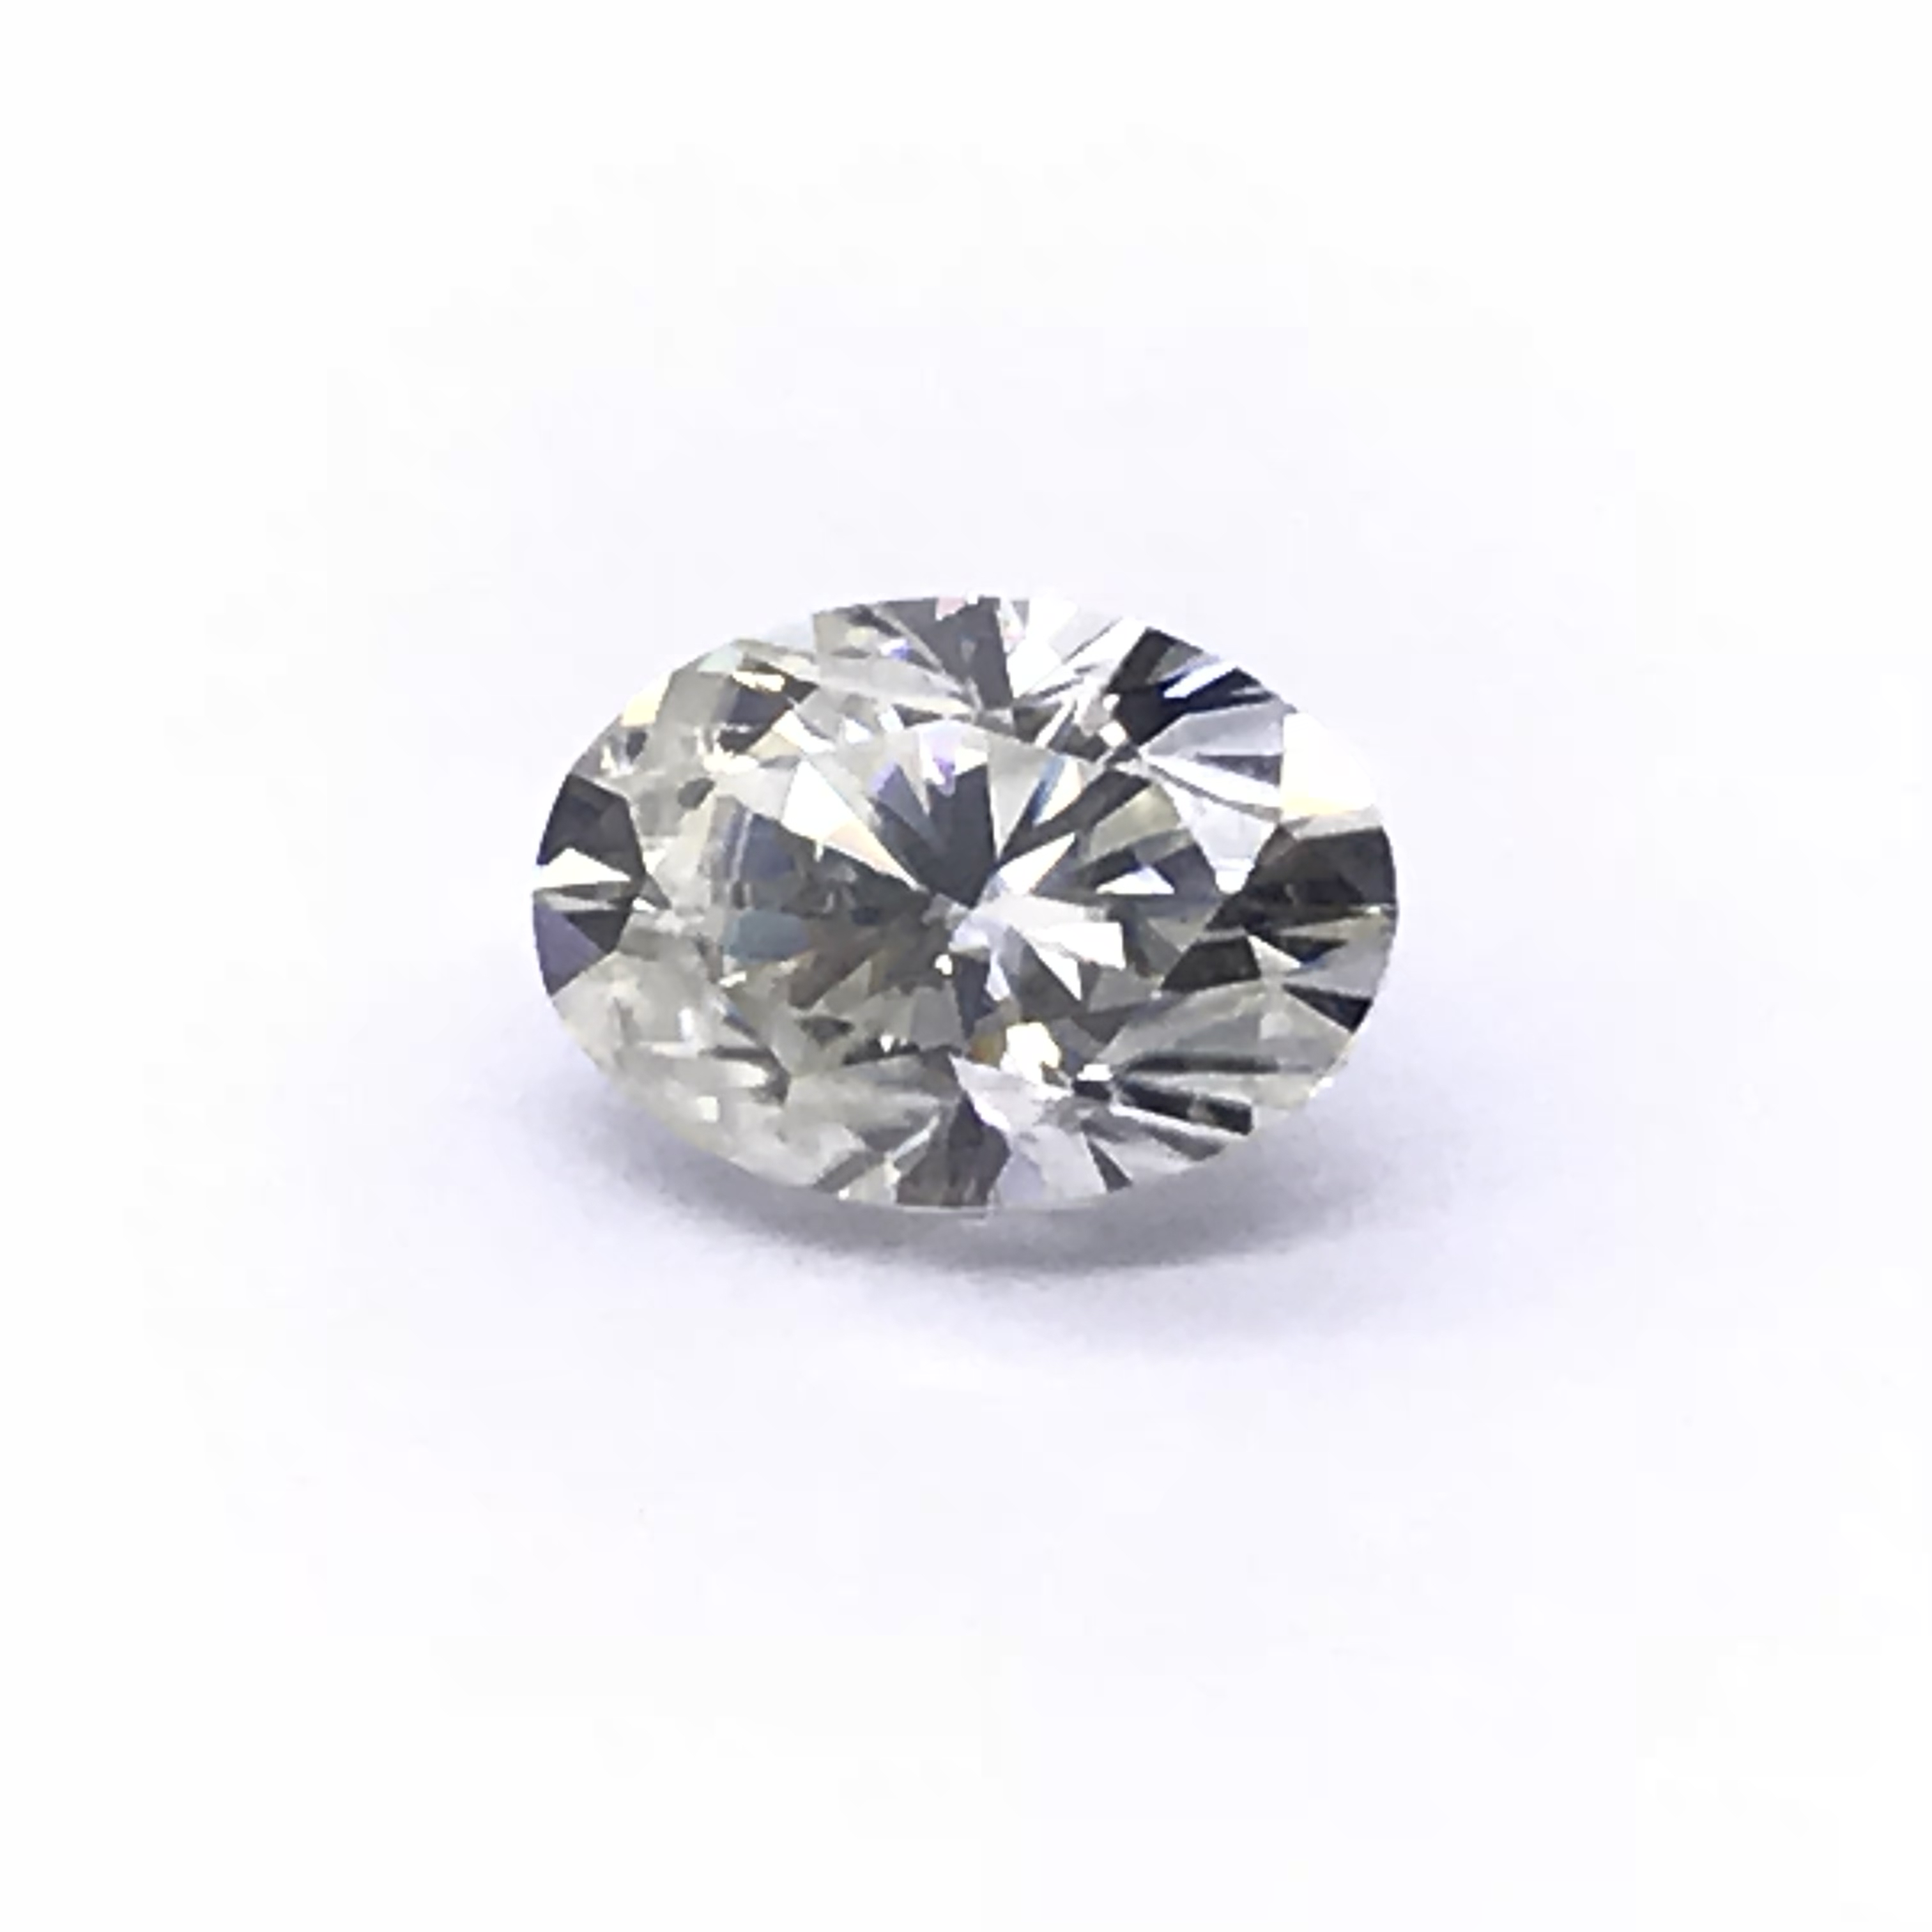 Loose Moissanite 2.5 carat oval cut GH Color VVS1 Excellent Cut for Engagement Ring Bead for Jewelry Making high quality